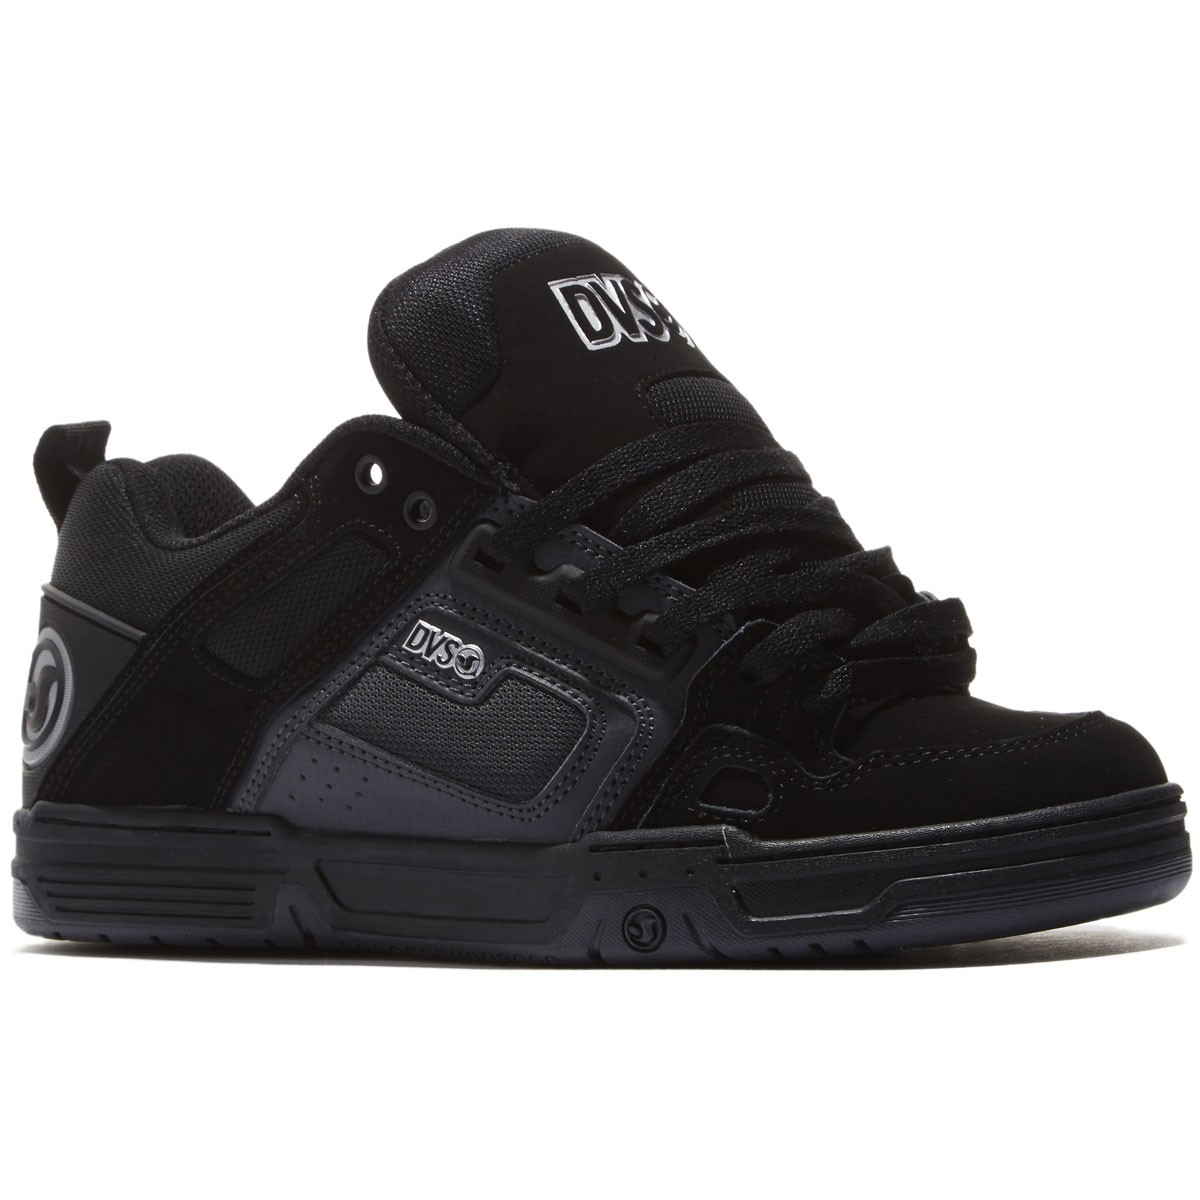 DVS Comanche Shoes - Black/Grey/Black/Nubuck - 8.0